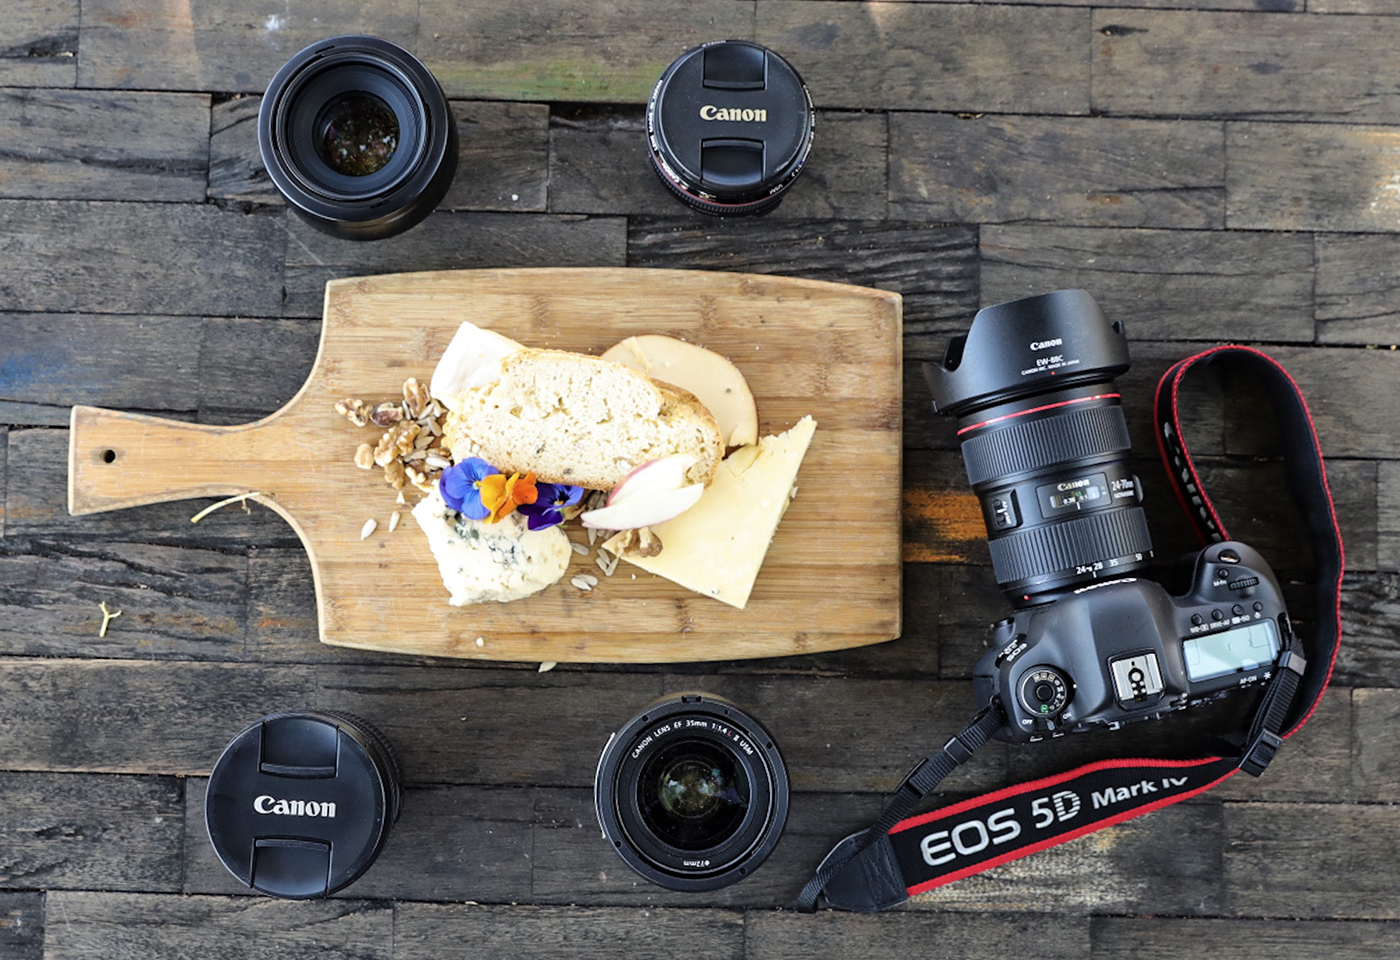 Camera and lenses around cheese board